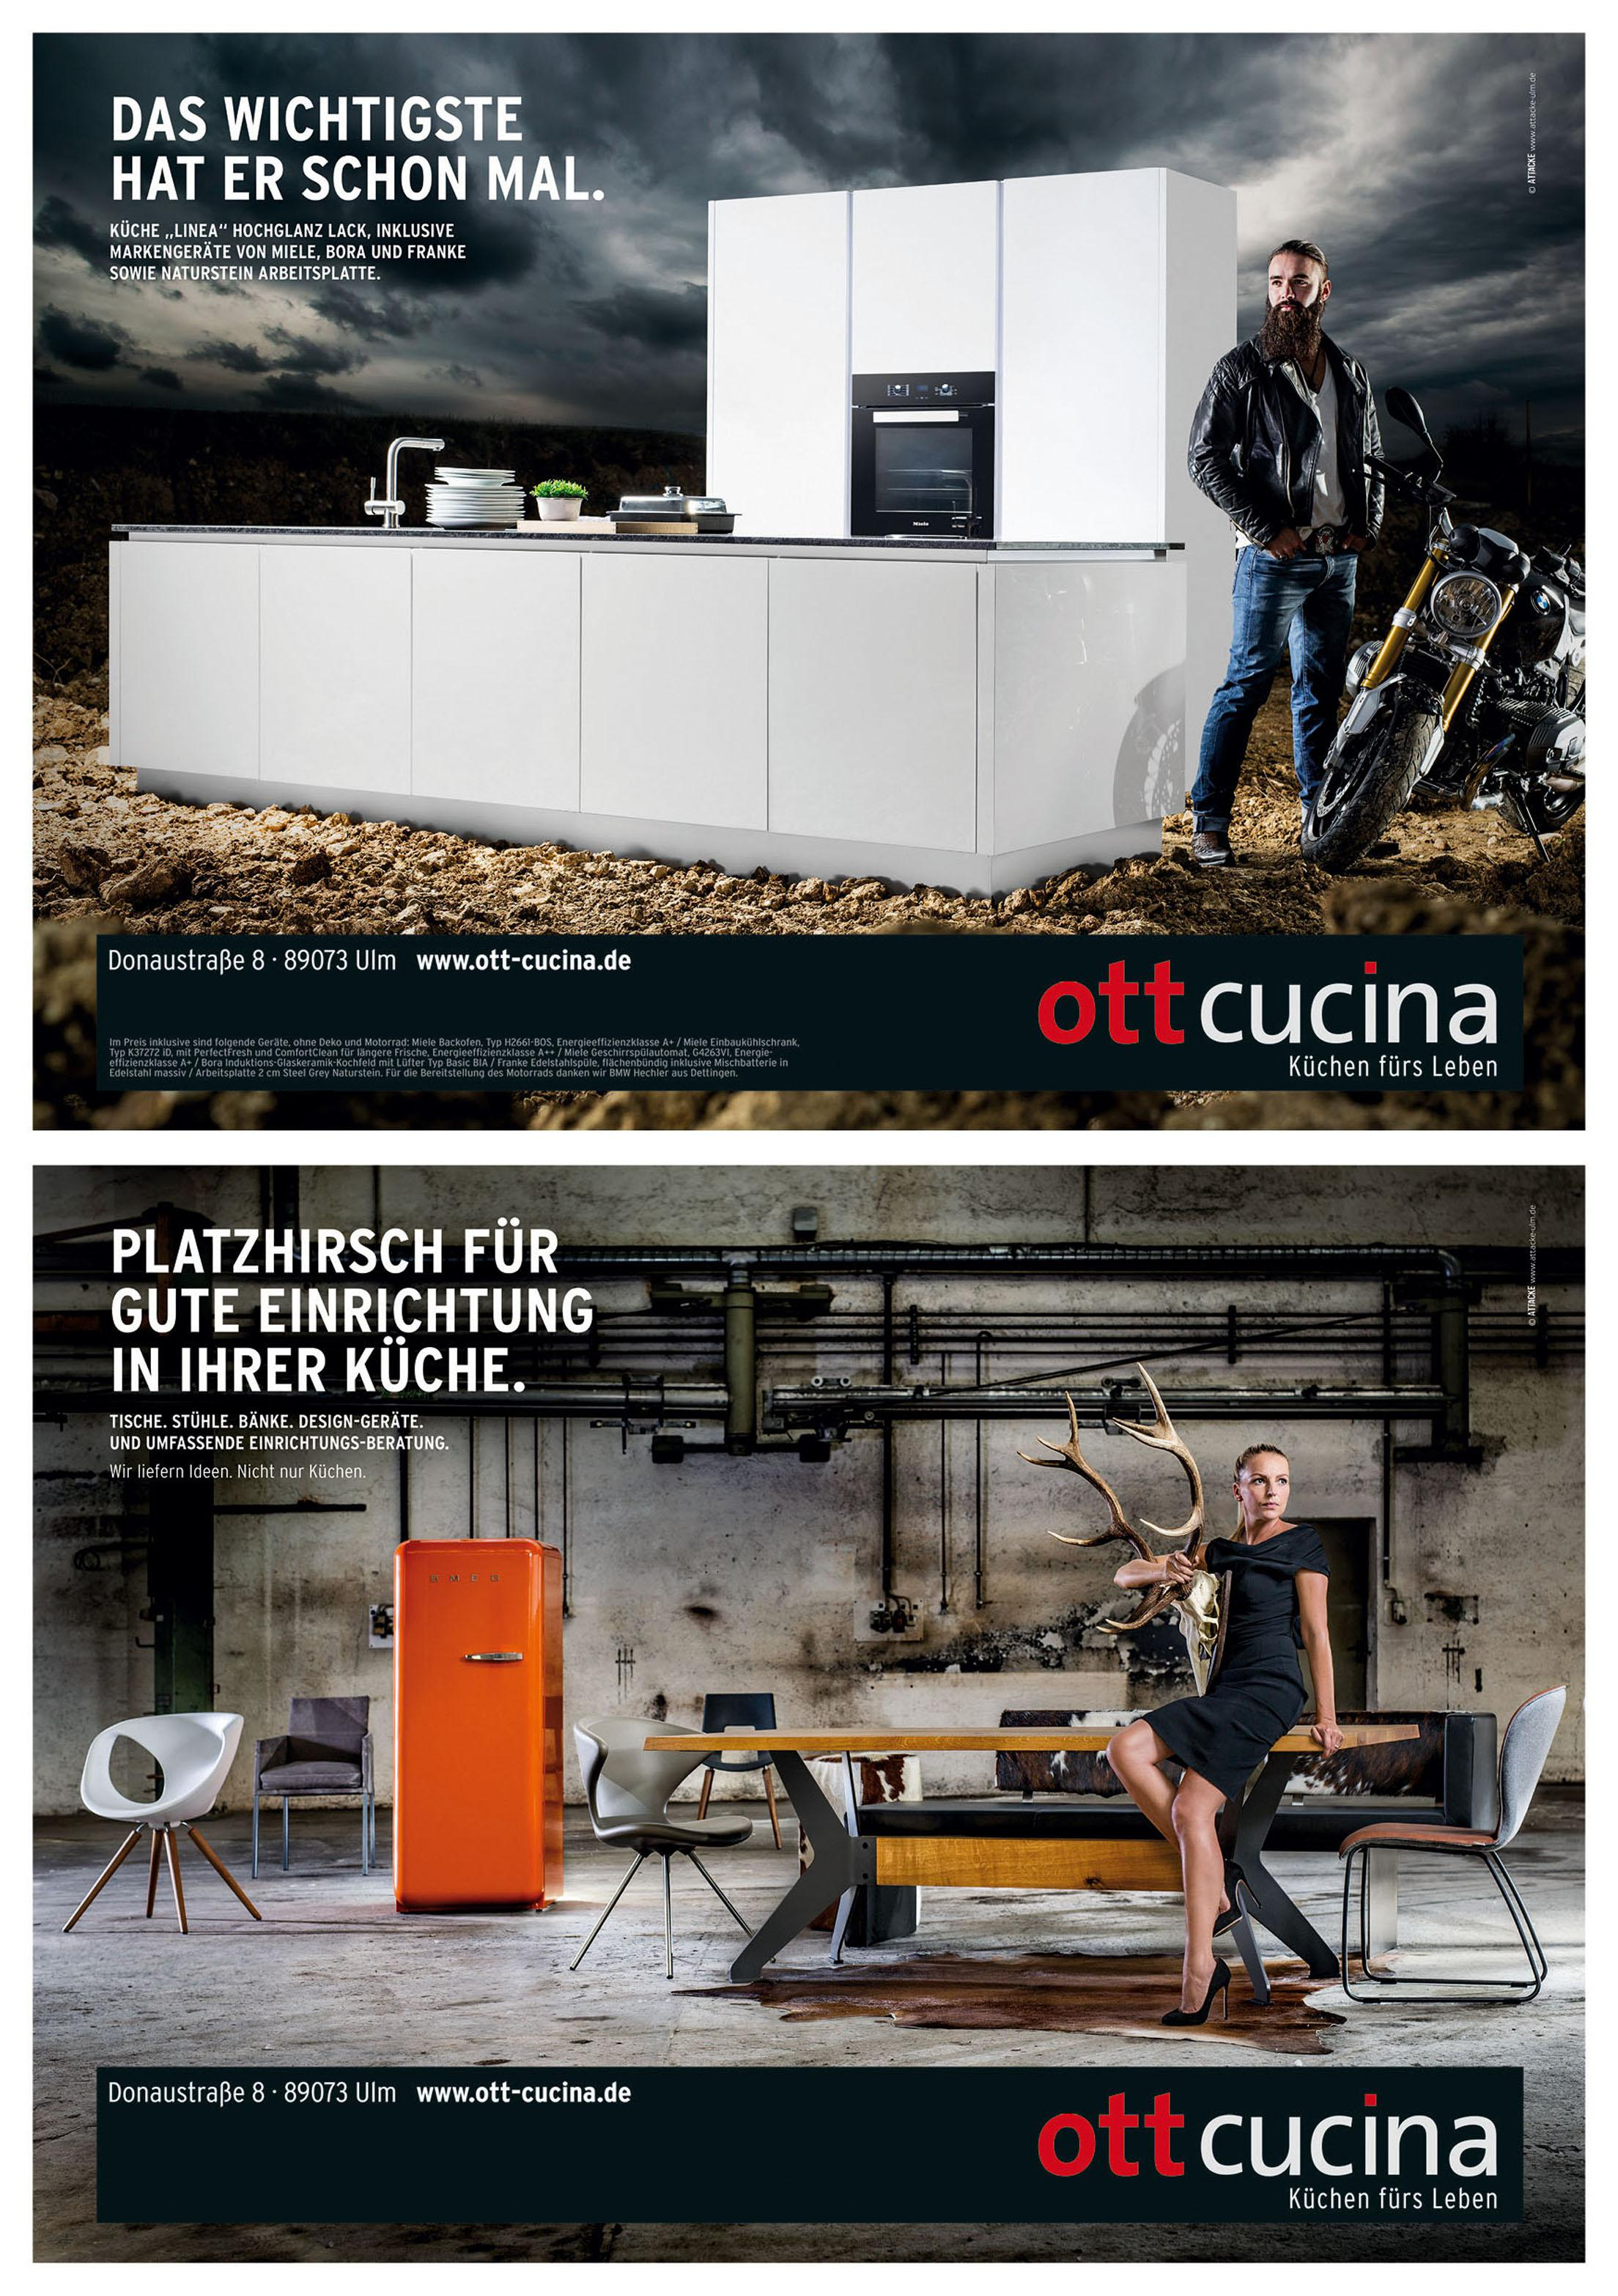 Ott Cucina Winner Integrated Campaigns And Advertising